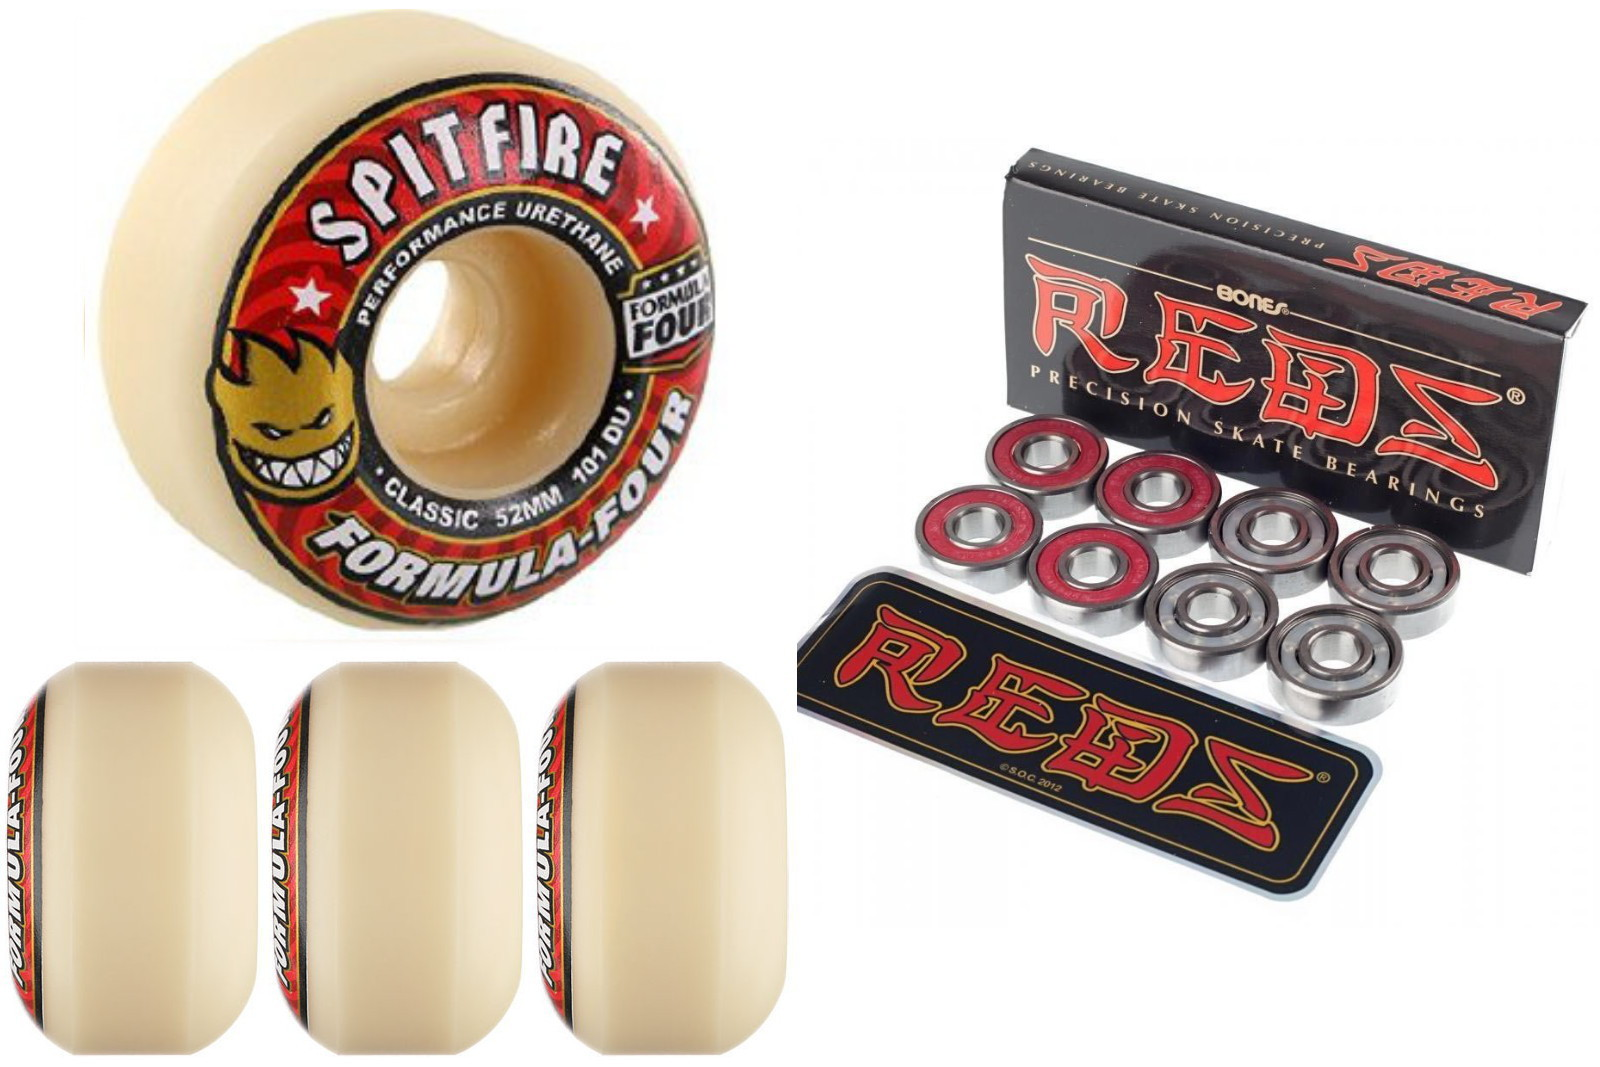 Spitfire Skateboard Wheels F4 Formula 4 Four Red 52mm 101d Classic with Bones Reds Bearings new FREE POST